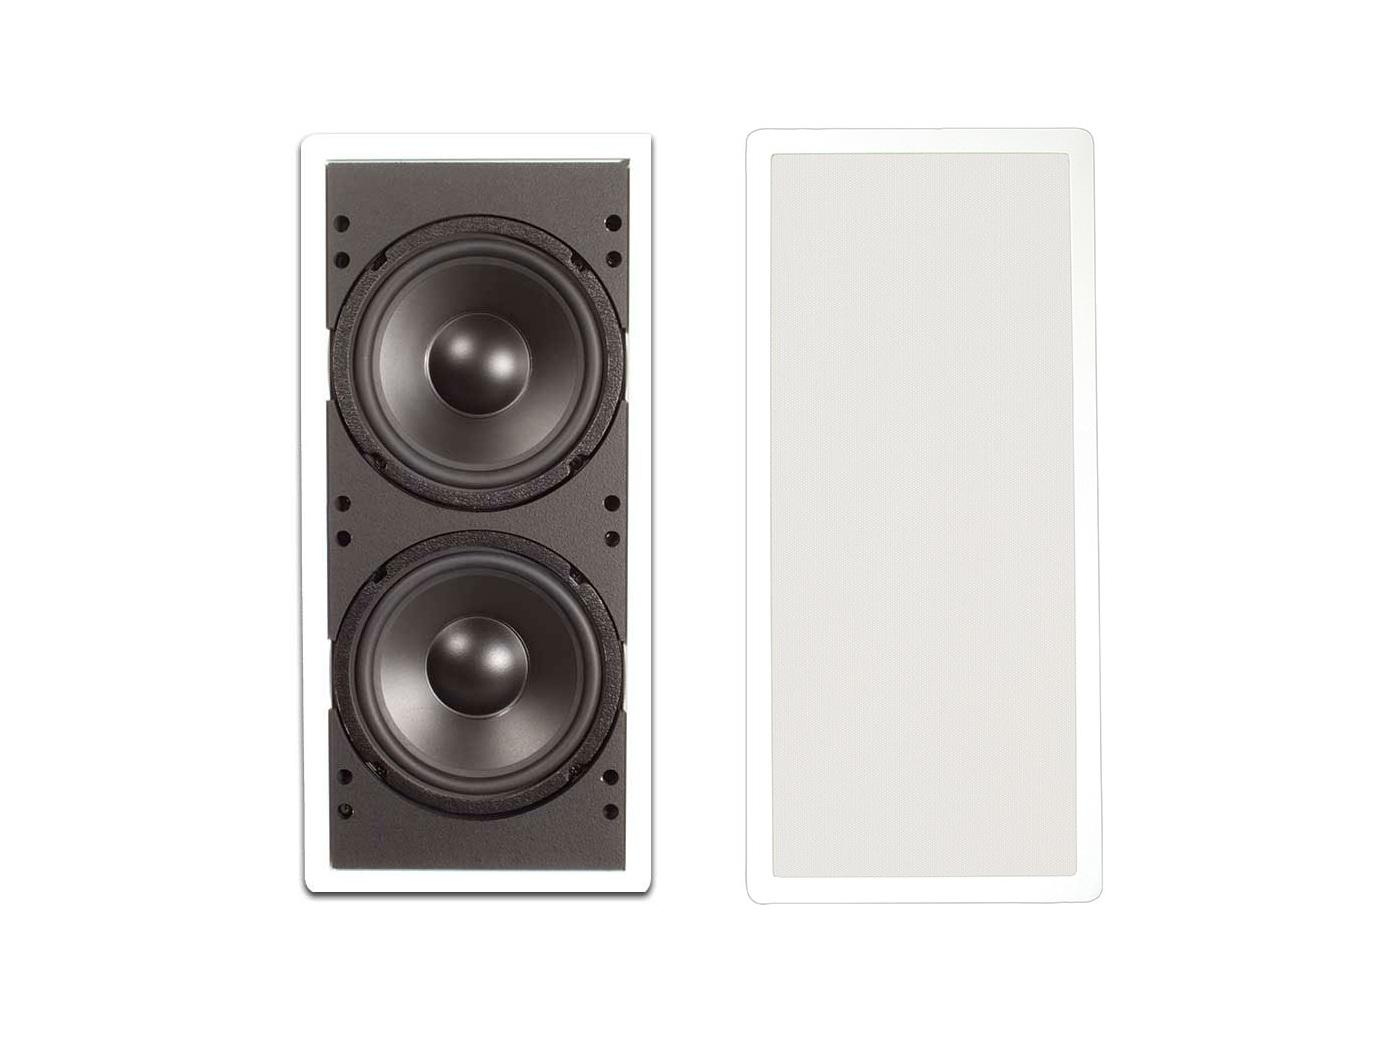 IW200-A KIT Dual 8-in In-Wall Subwoofer with Sealed Enclosure/Amplifier by Soliddrive